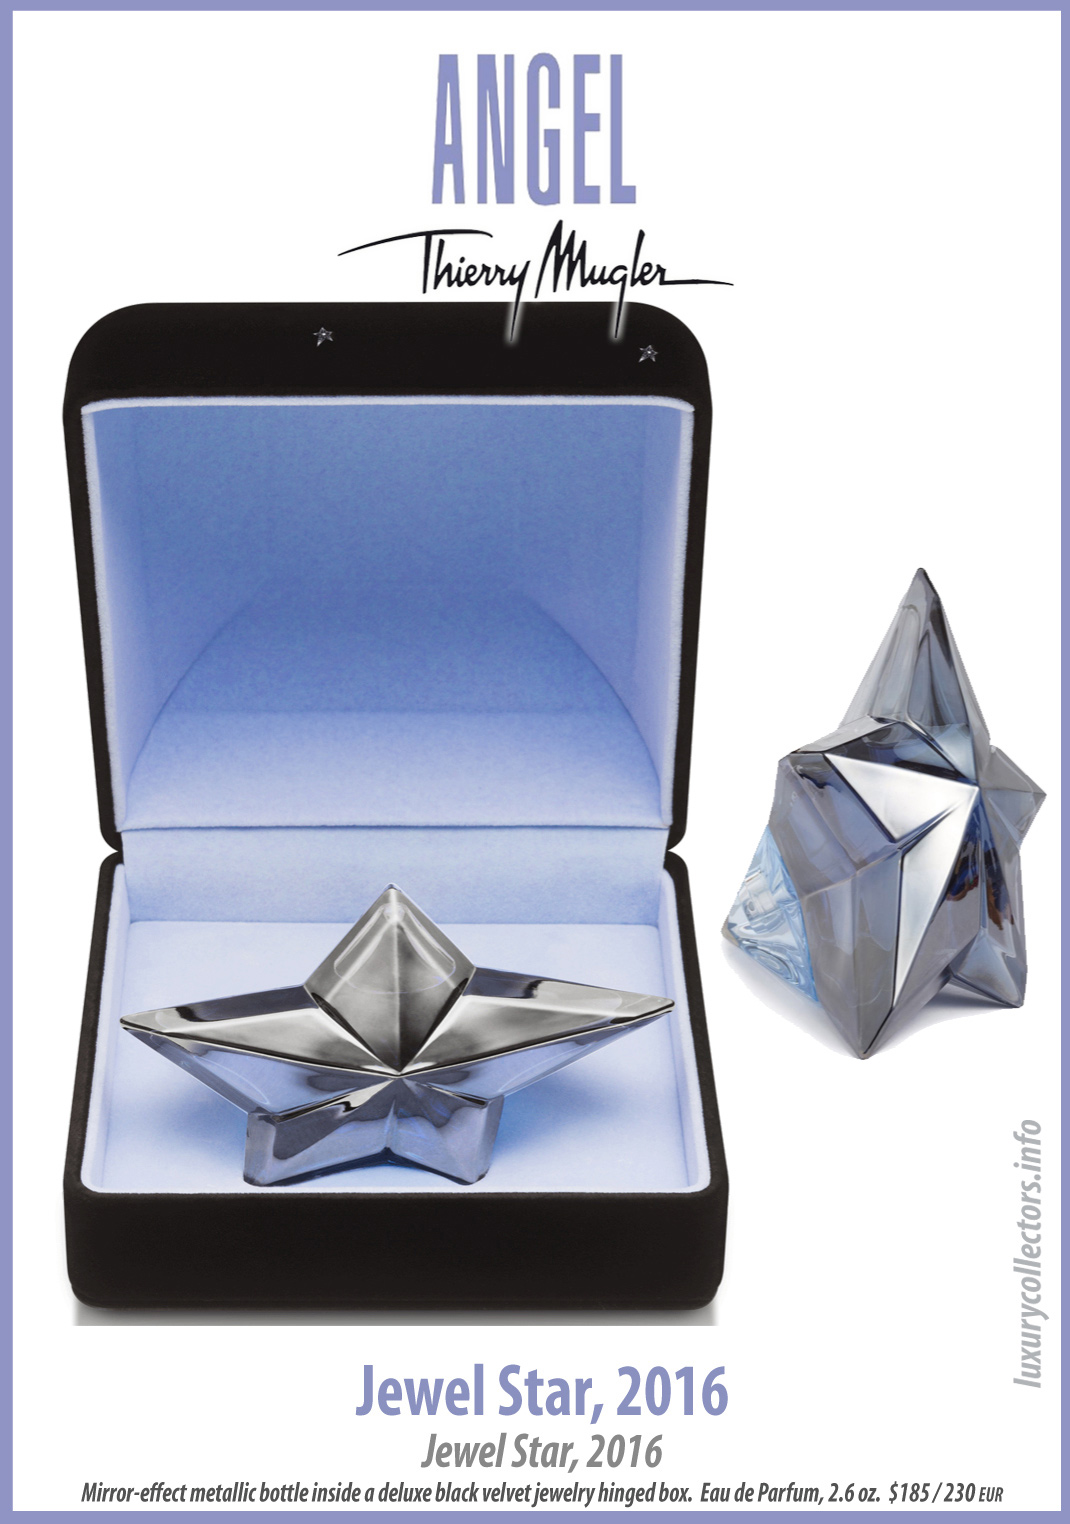 Thierry Mugler Angel Perfume Collector's Limited Edition Bottle 2016 Jewel Star